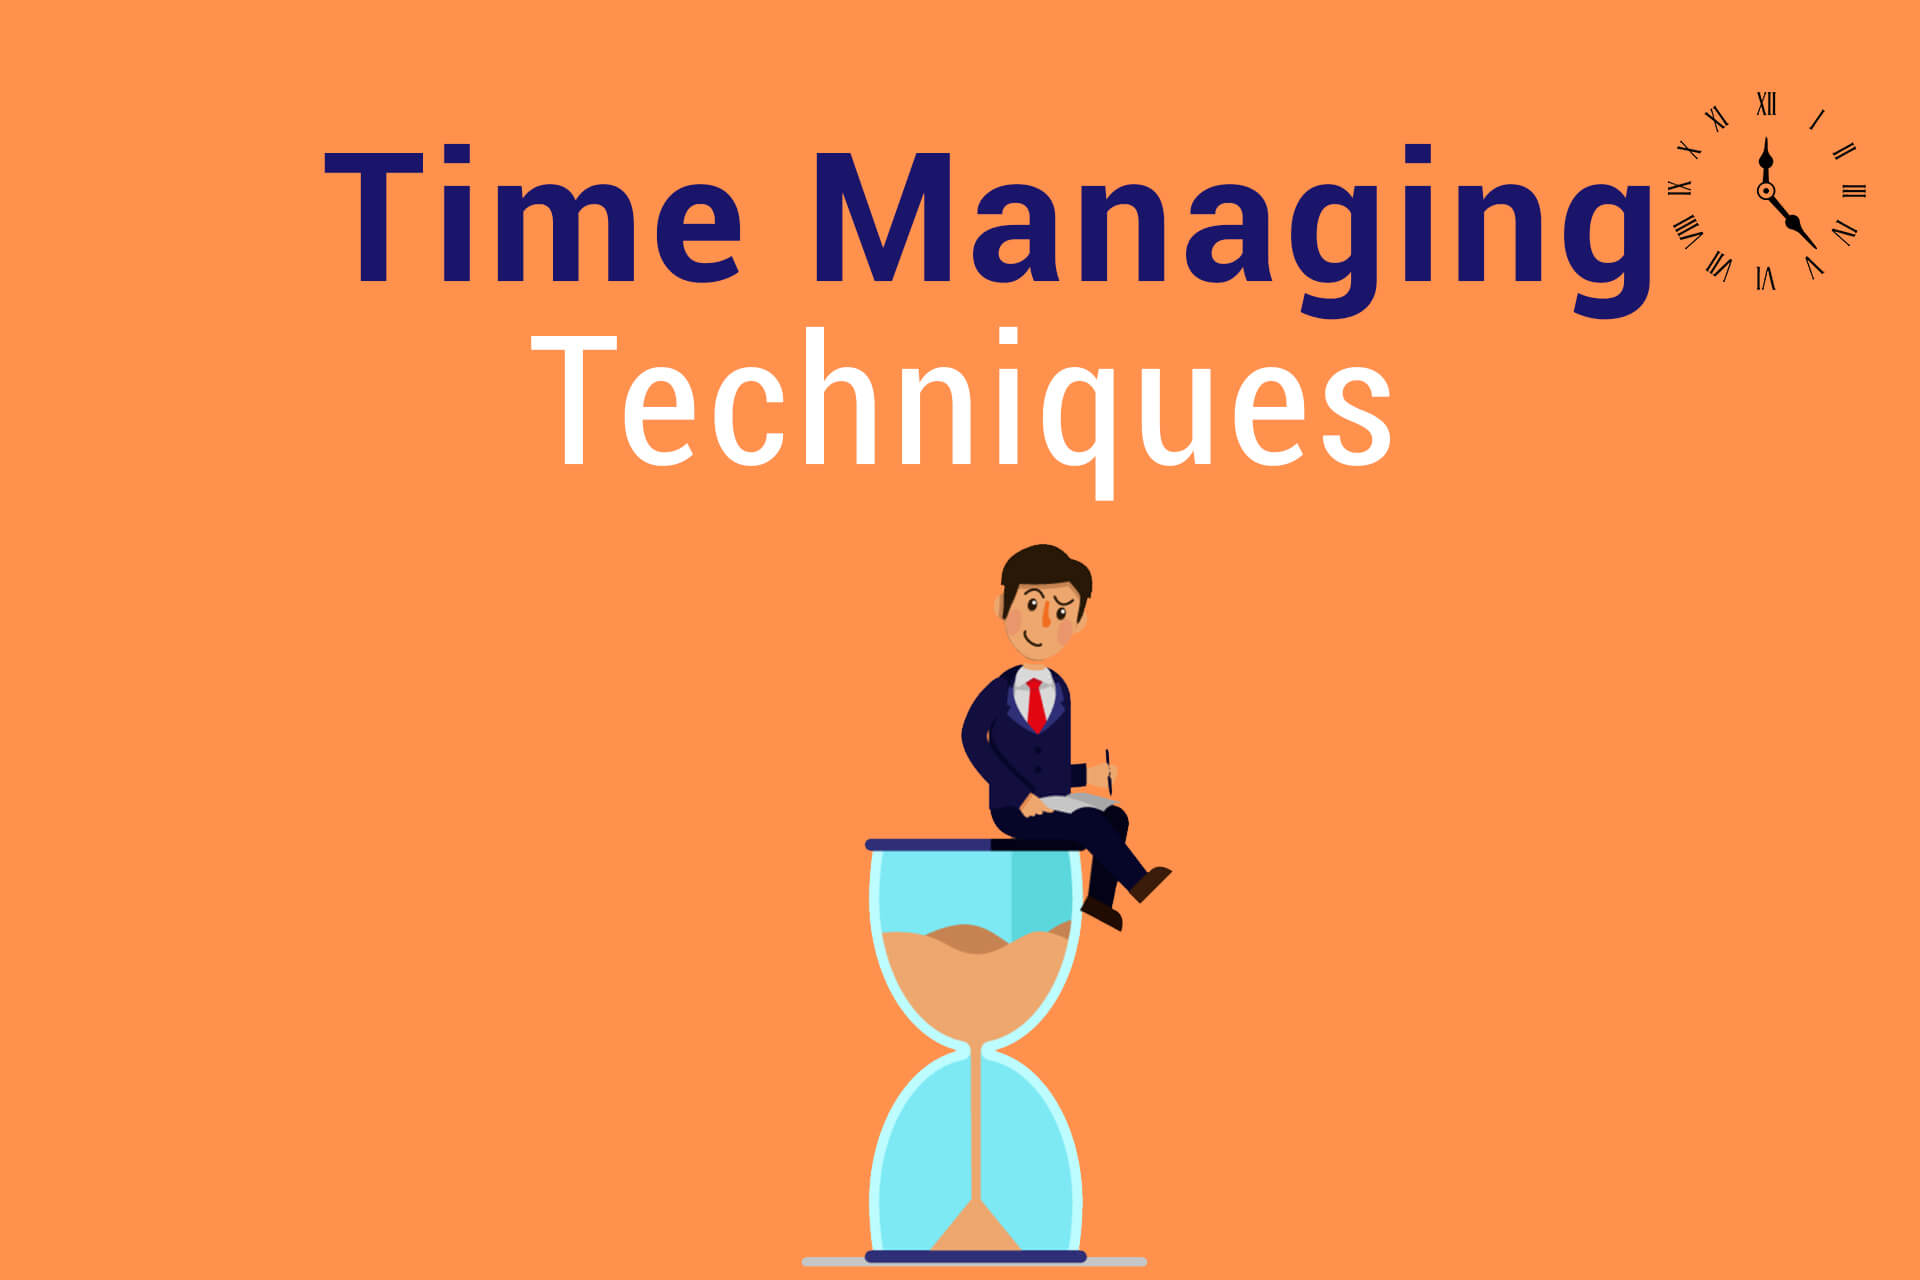 Time Managing Techniques